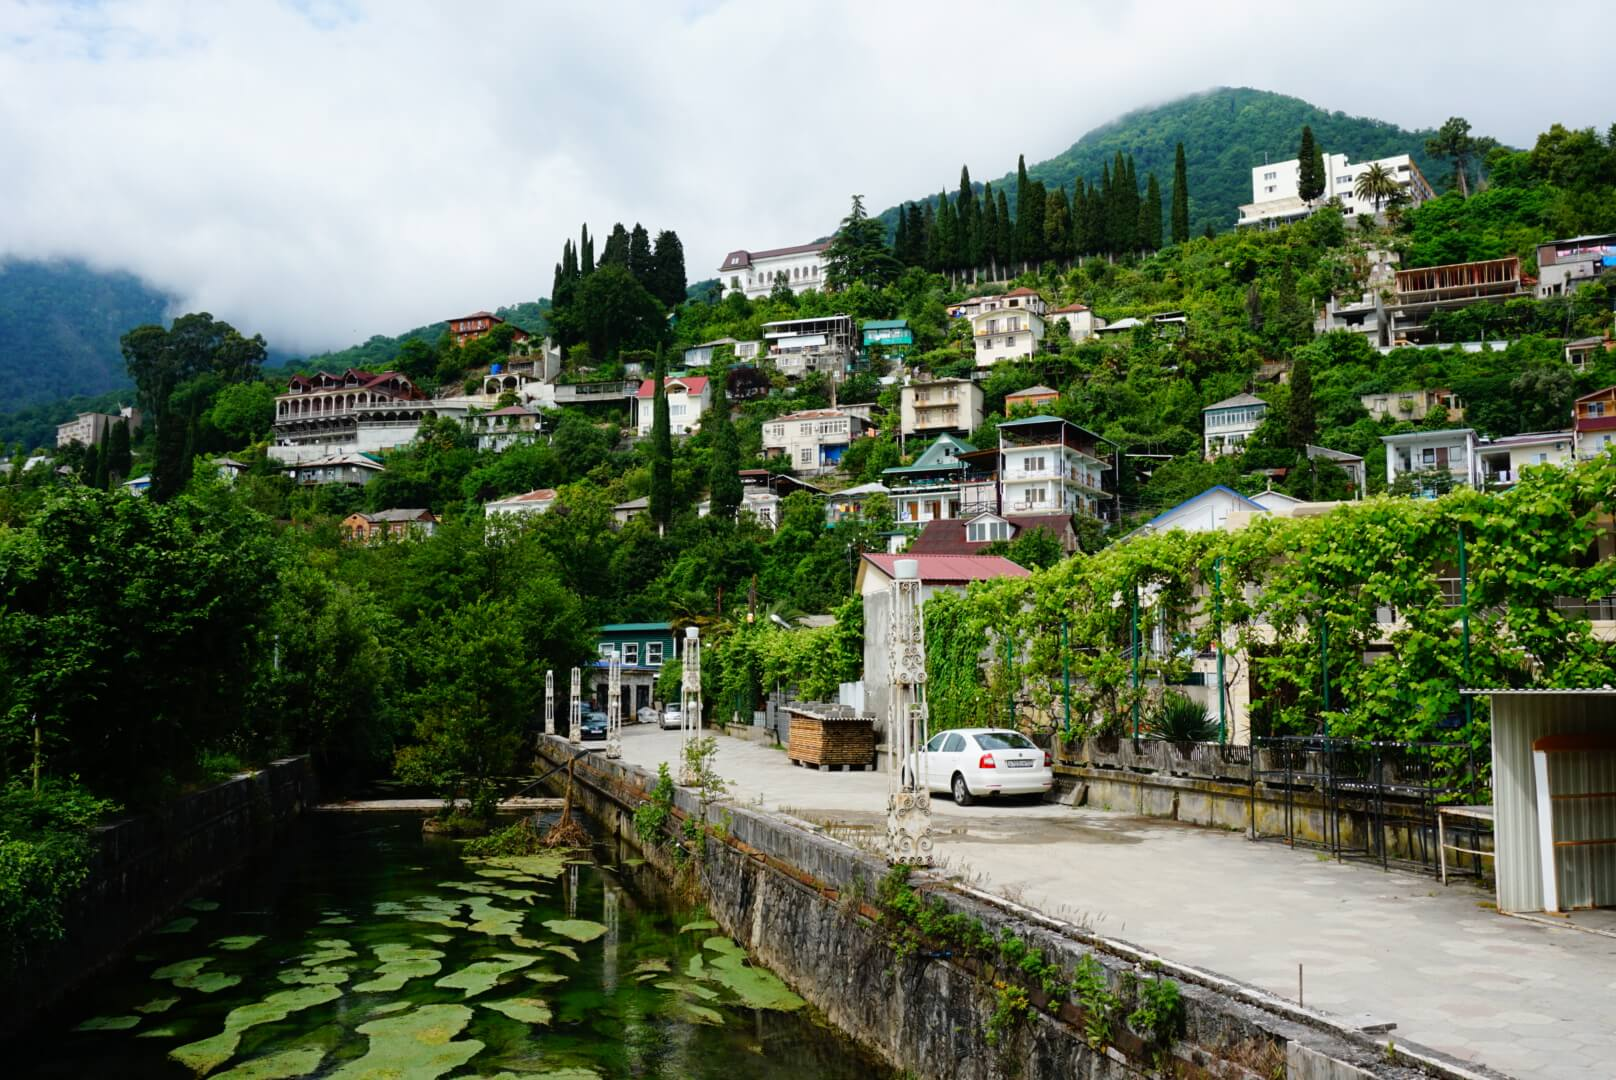 Guide to Abkhazia: Buildings in Gagra